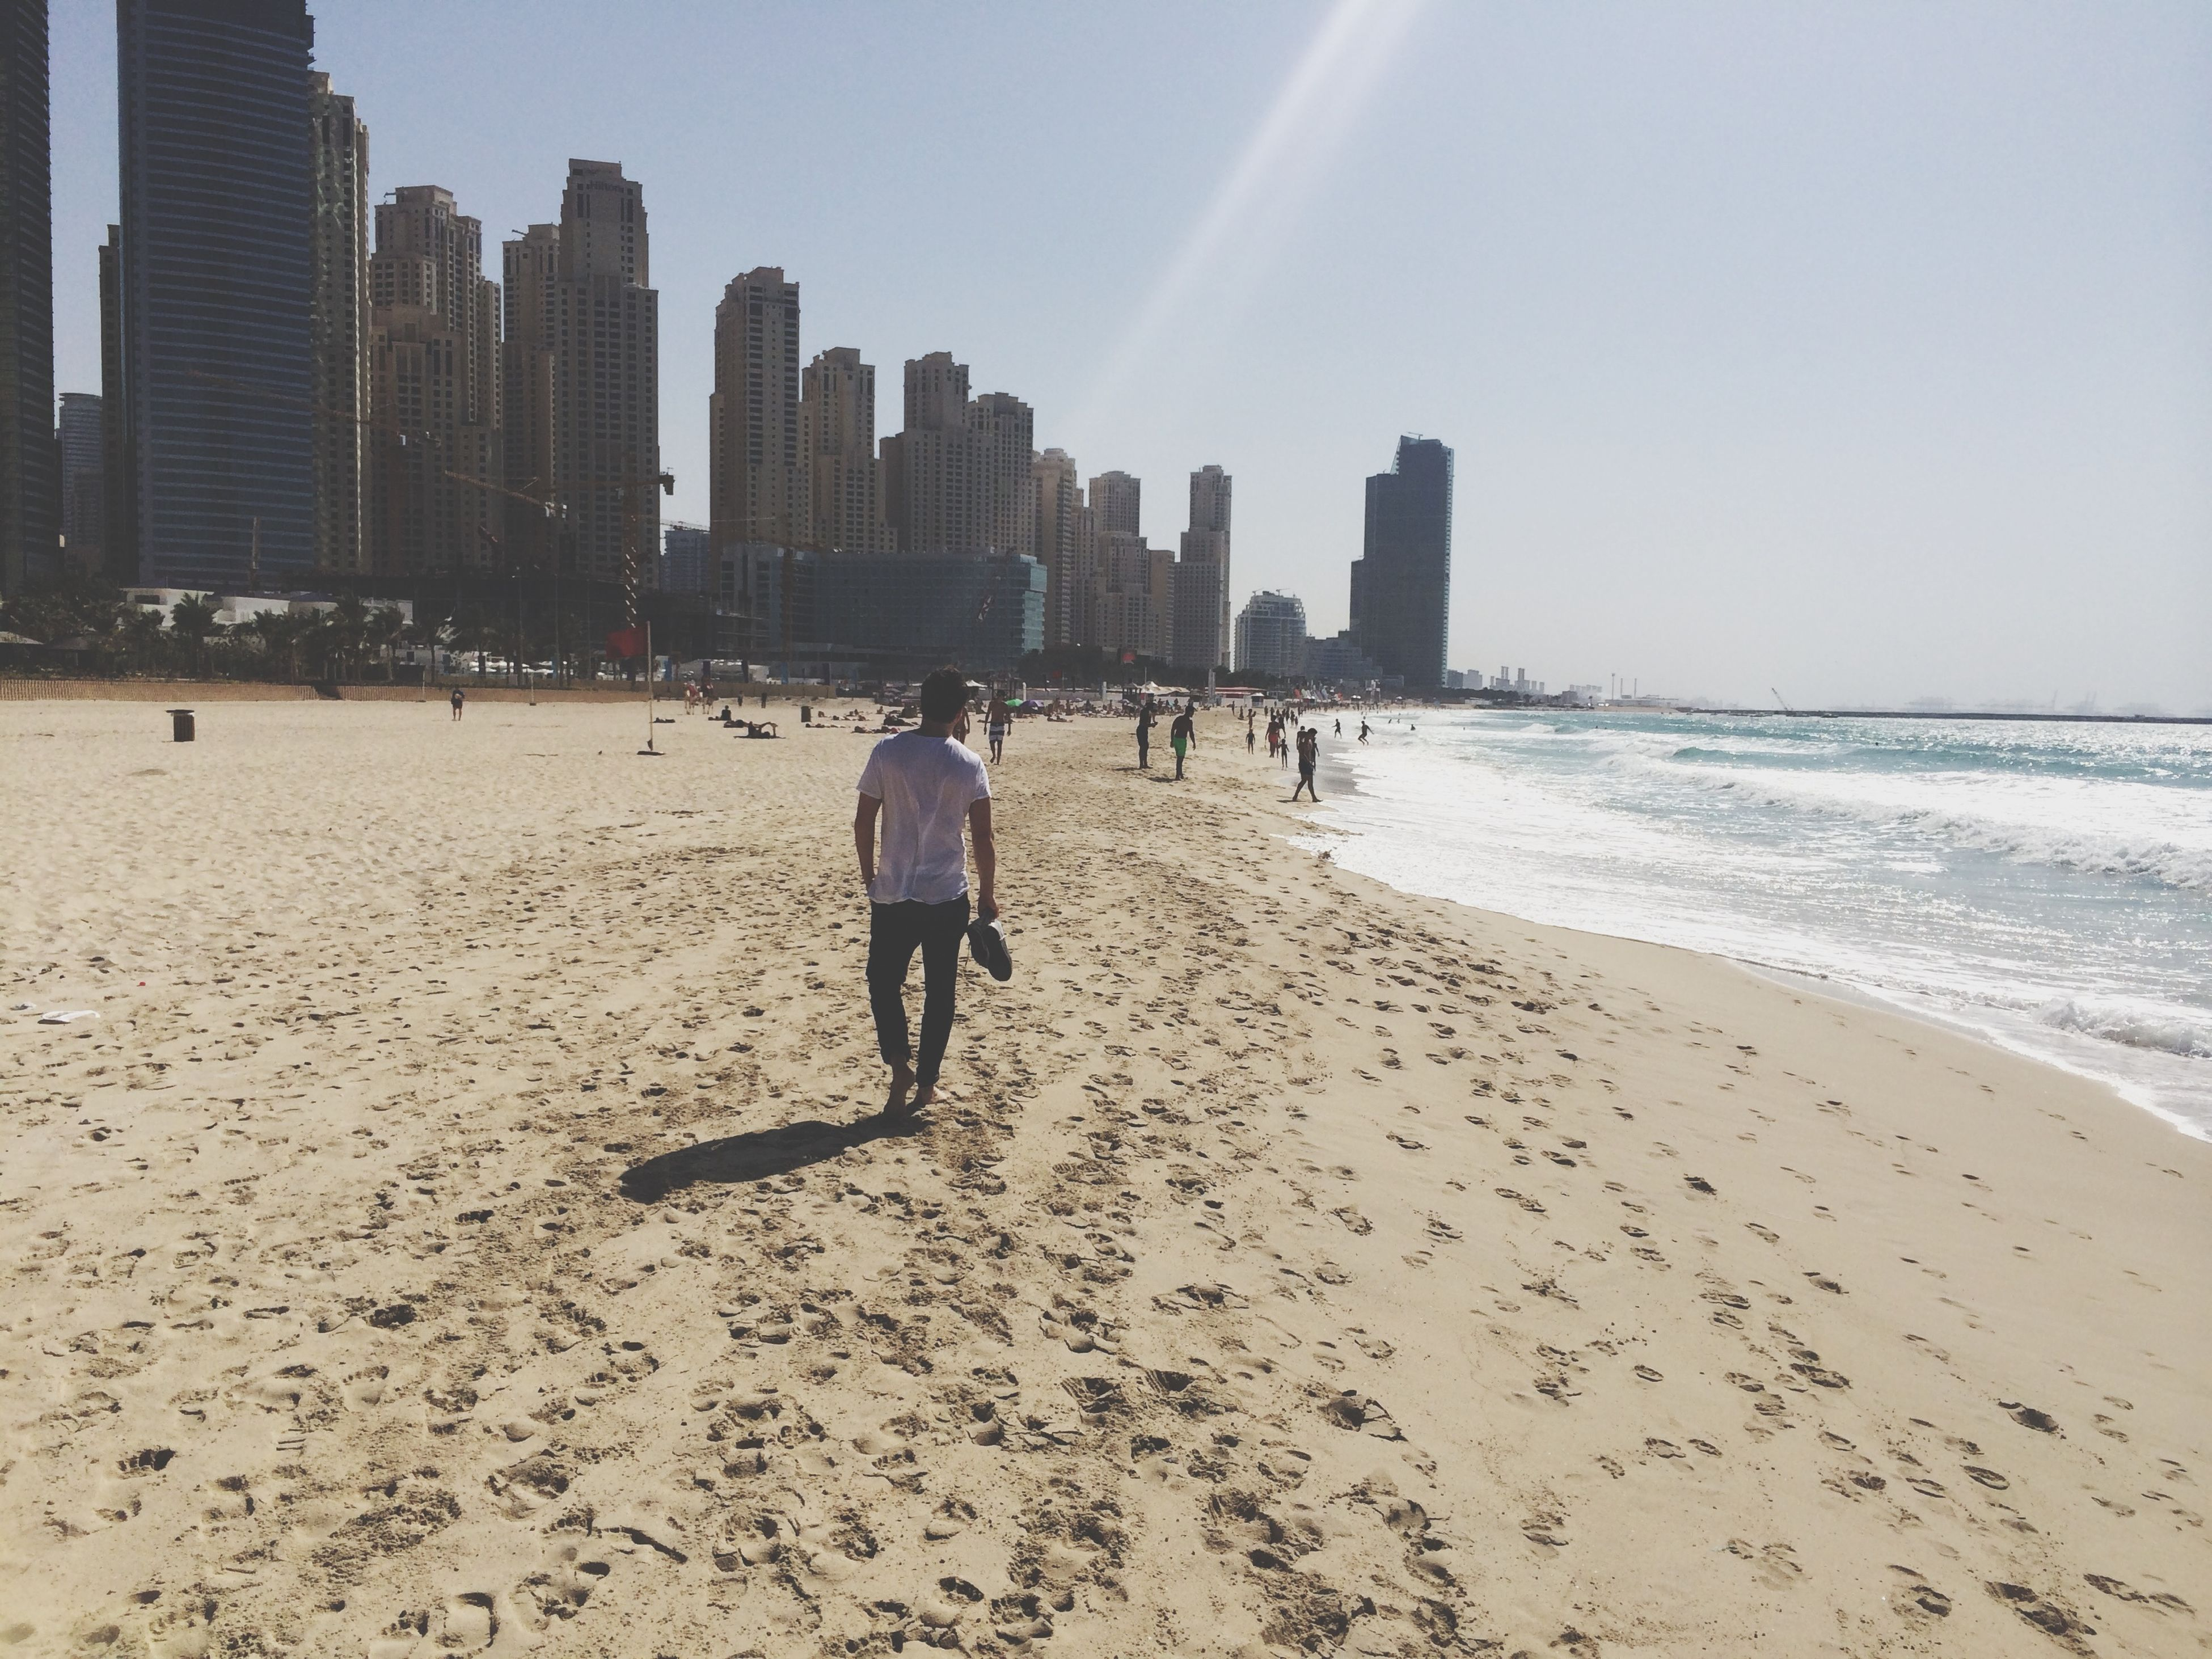 beach, sand, sea, lifestyles, shore, leisure activity, built structure, architecture, building exterior, walking, water, men, person, sunlight, vacations, full length, tourist, large group of people, sky